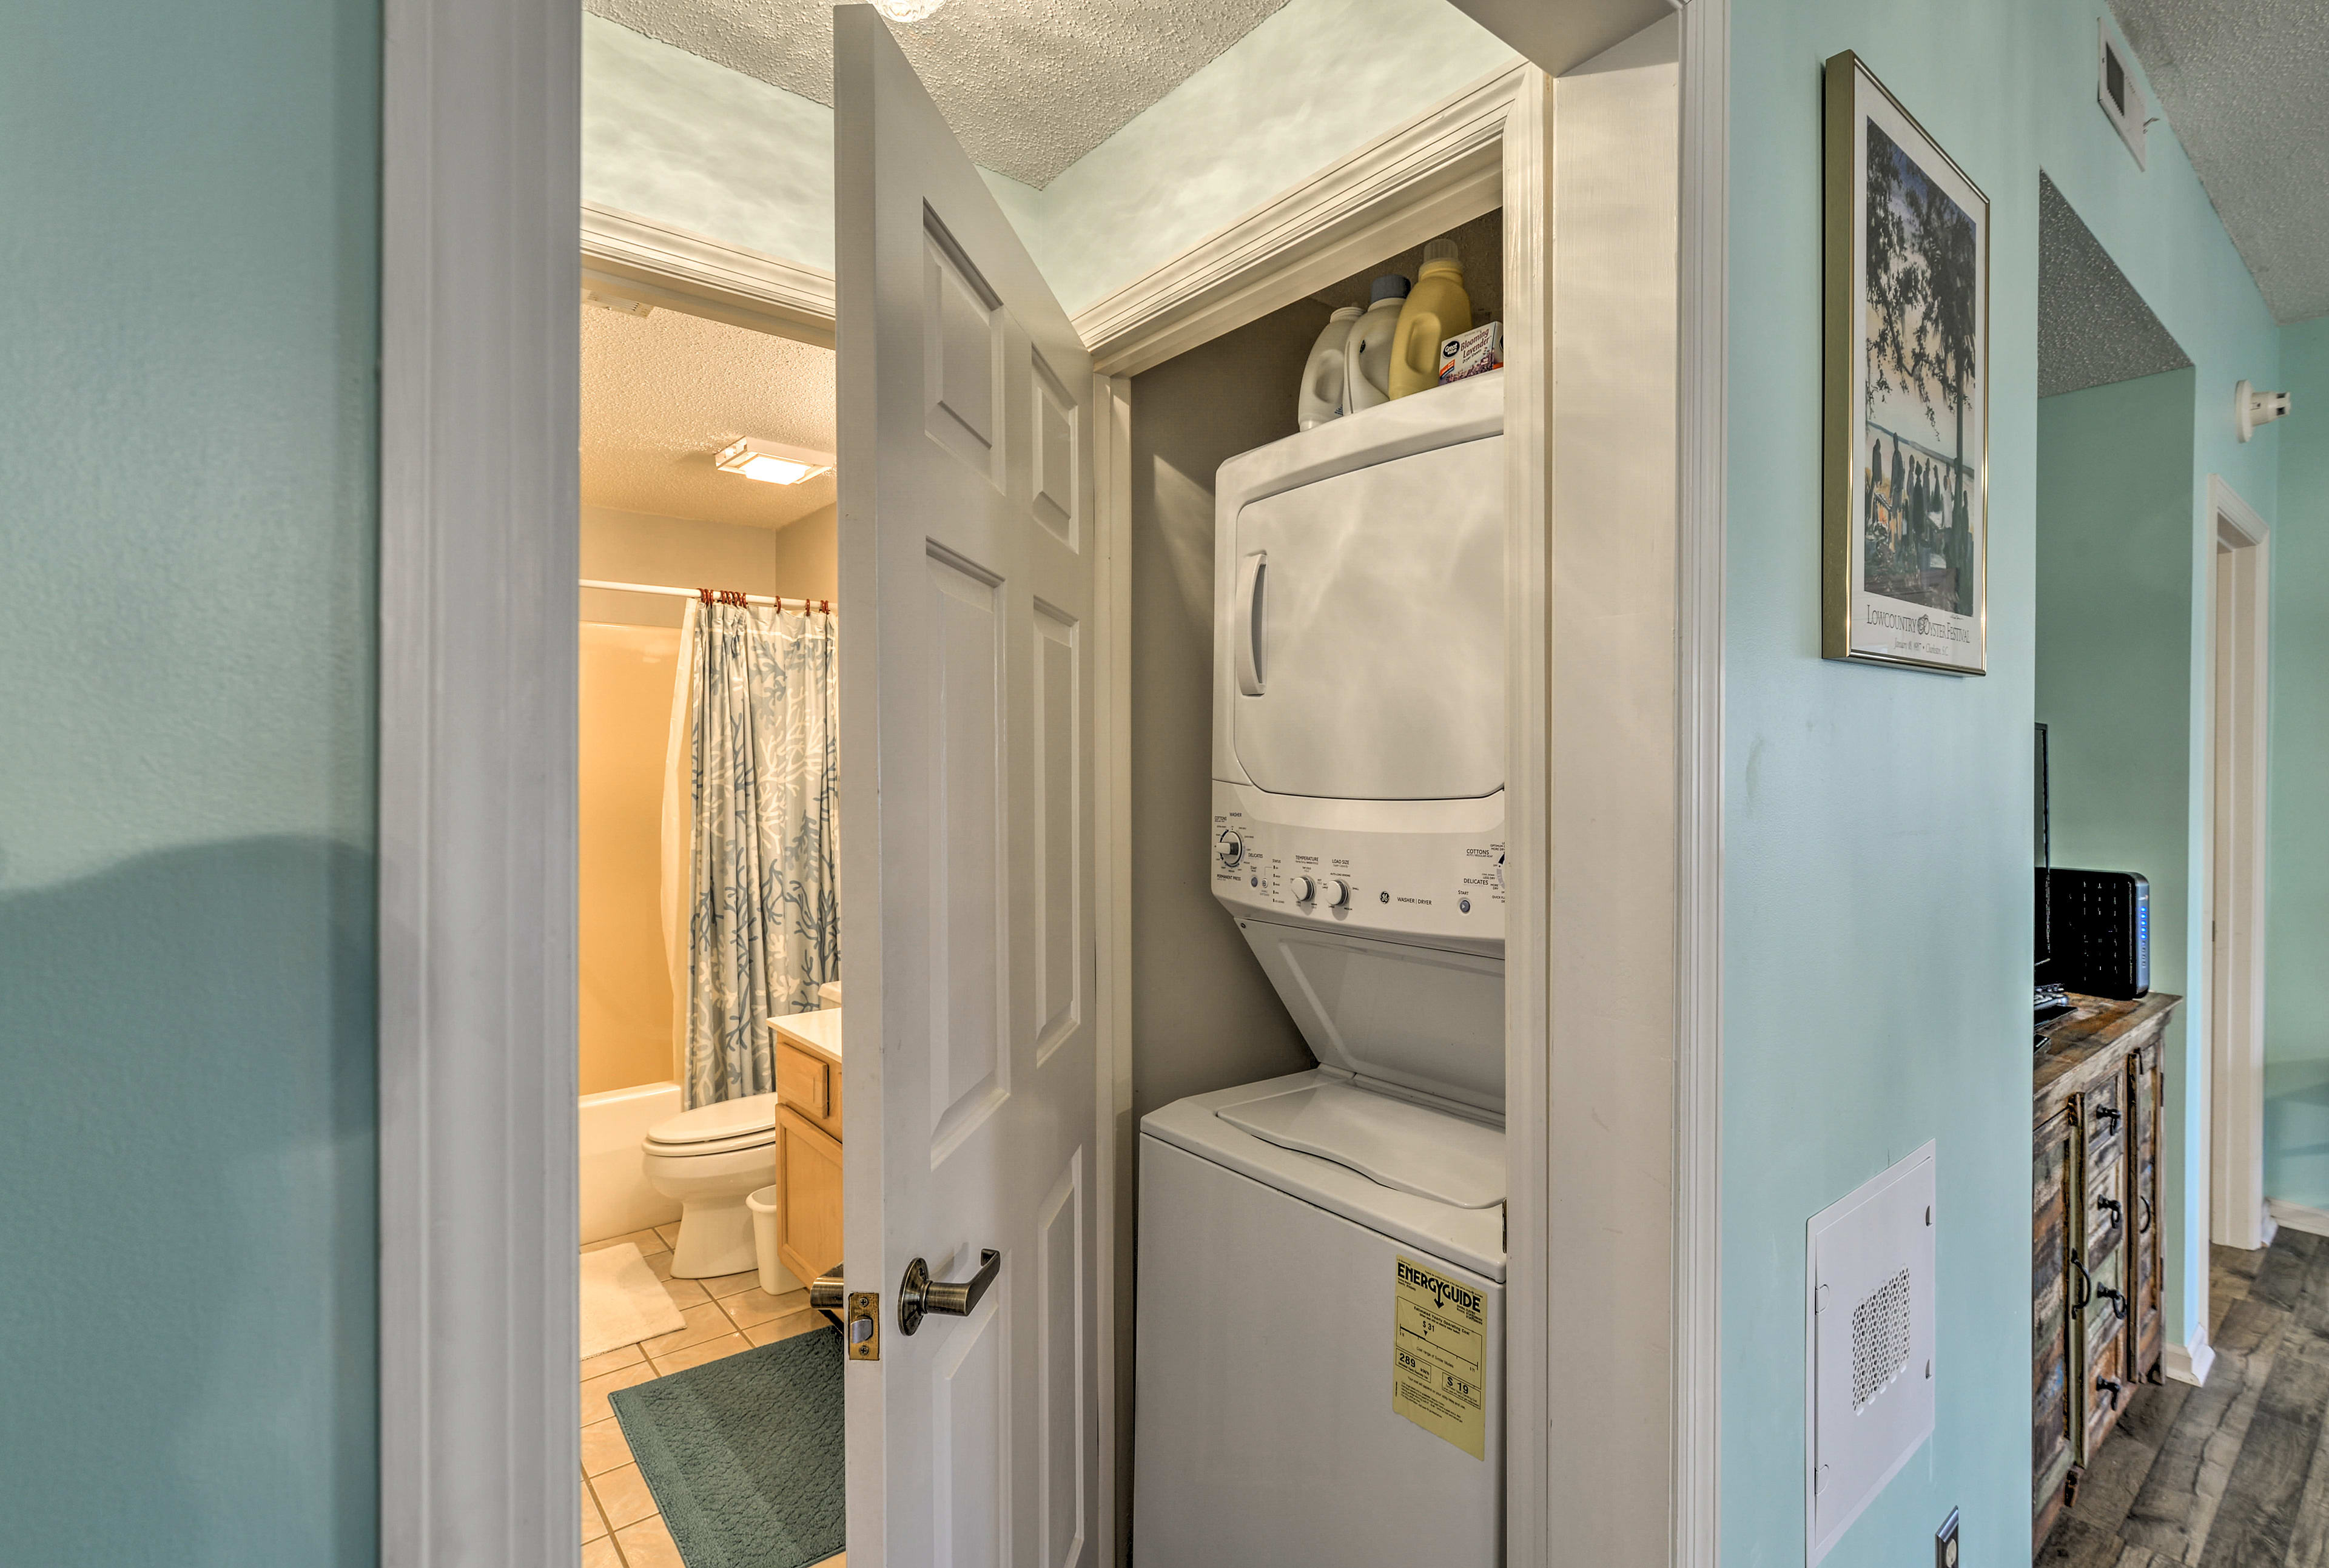 Keep your wardrobe fresh in this in-unit washer and dryer.